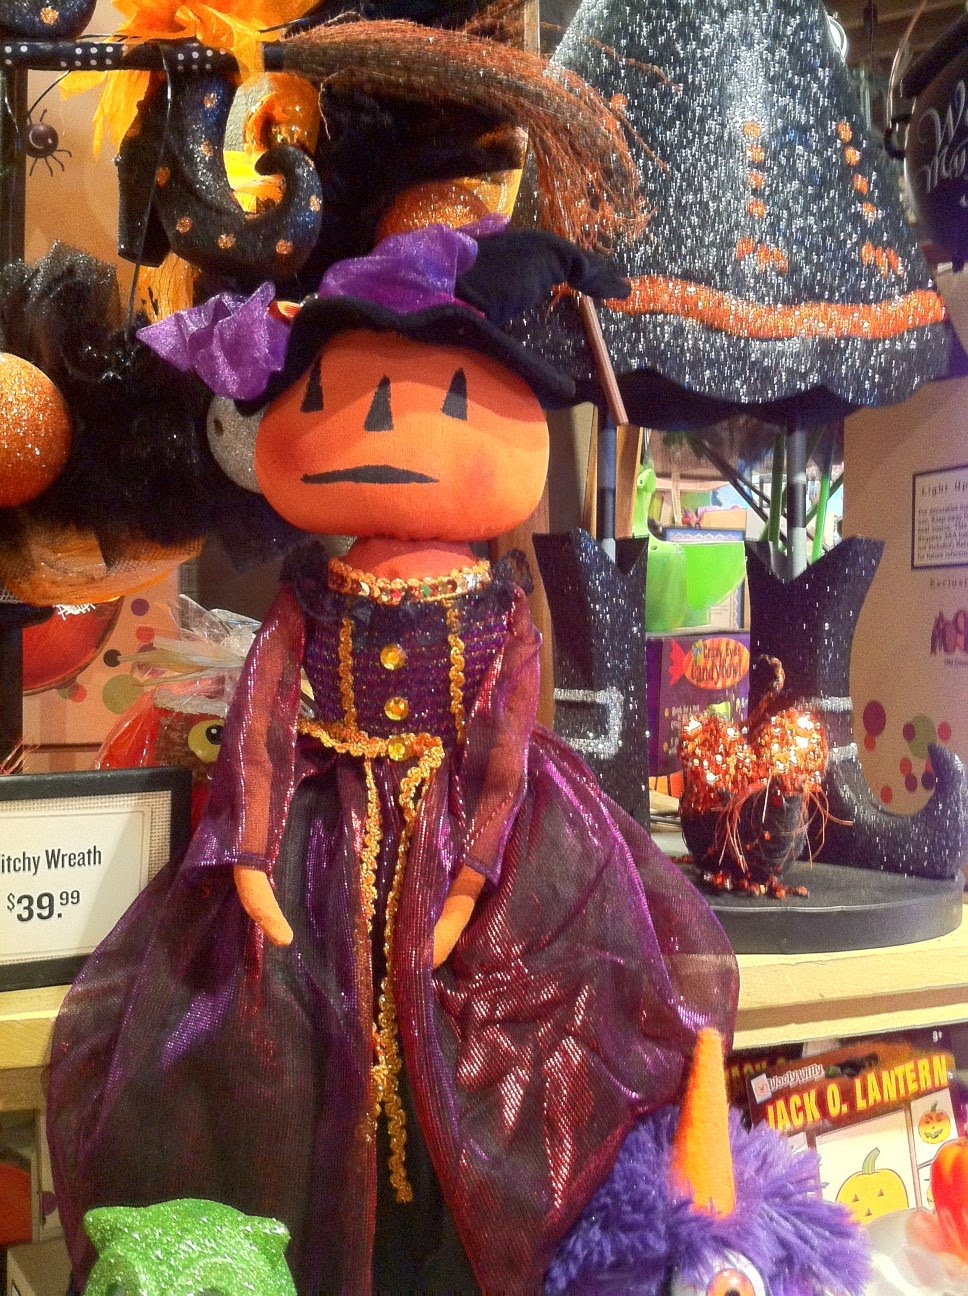 cracker barrel has a variety of halloween decorations and gift items out including some of the items shown here the pumpkin and witch figures and the neat